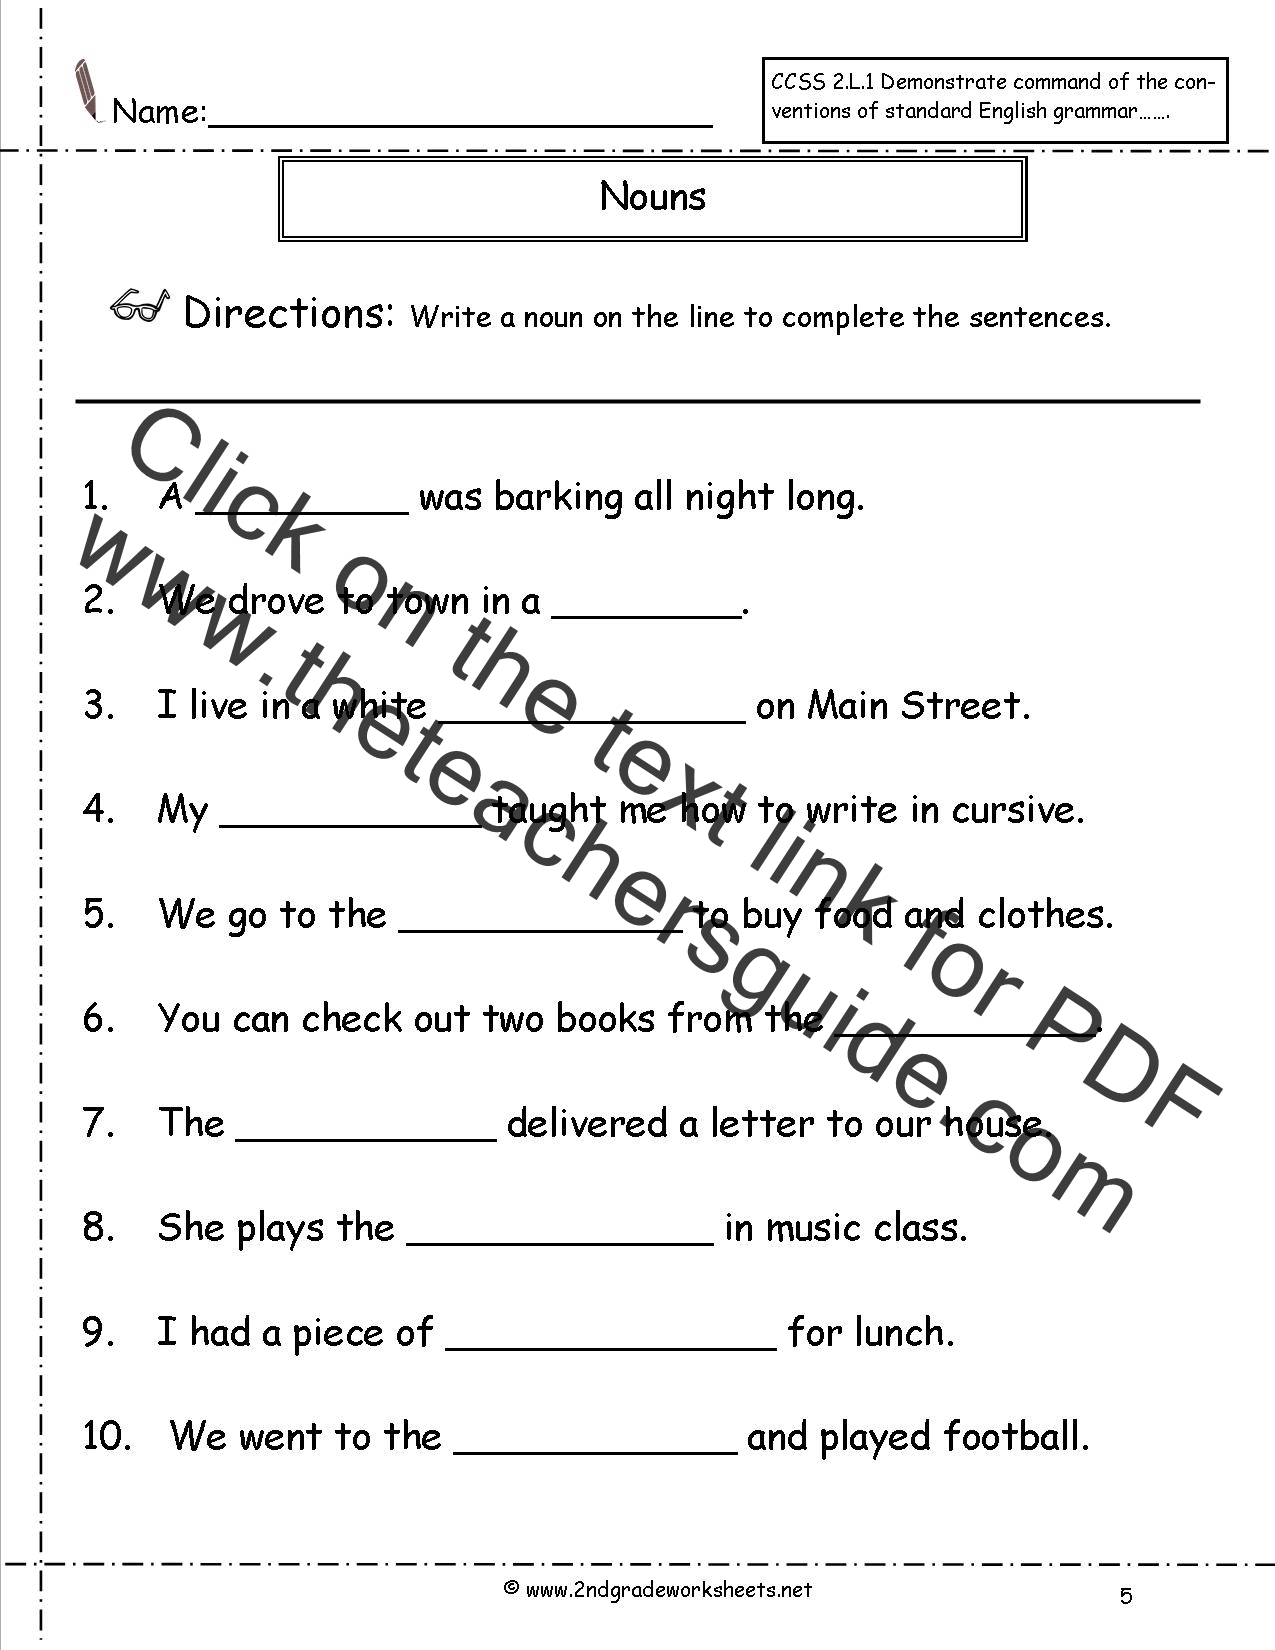 Nouns Worksheets and Printouts – A and an Worksheets